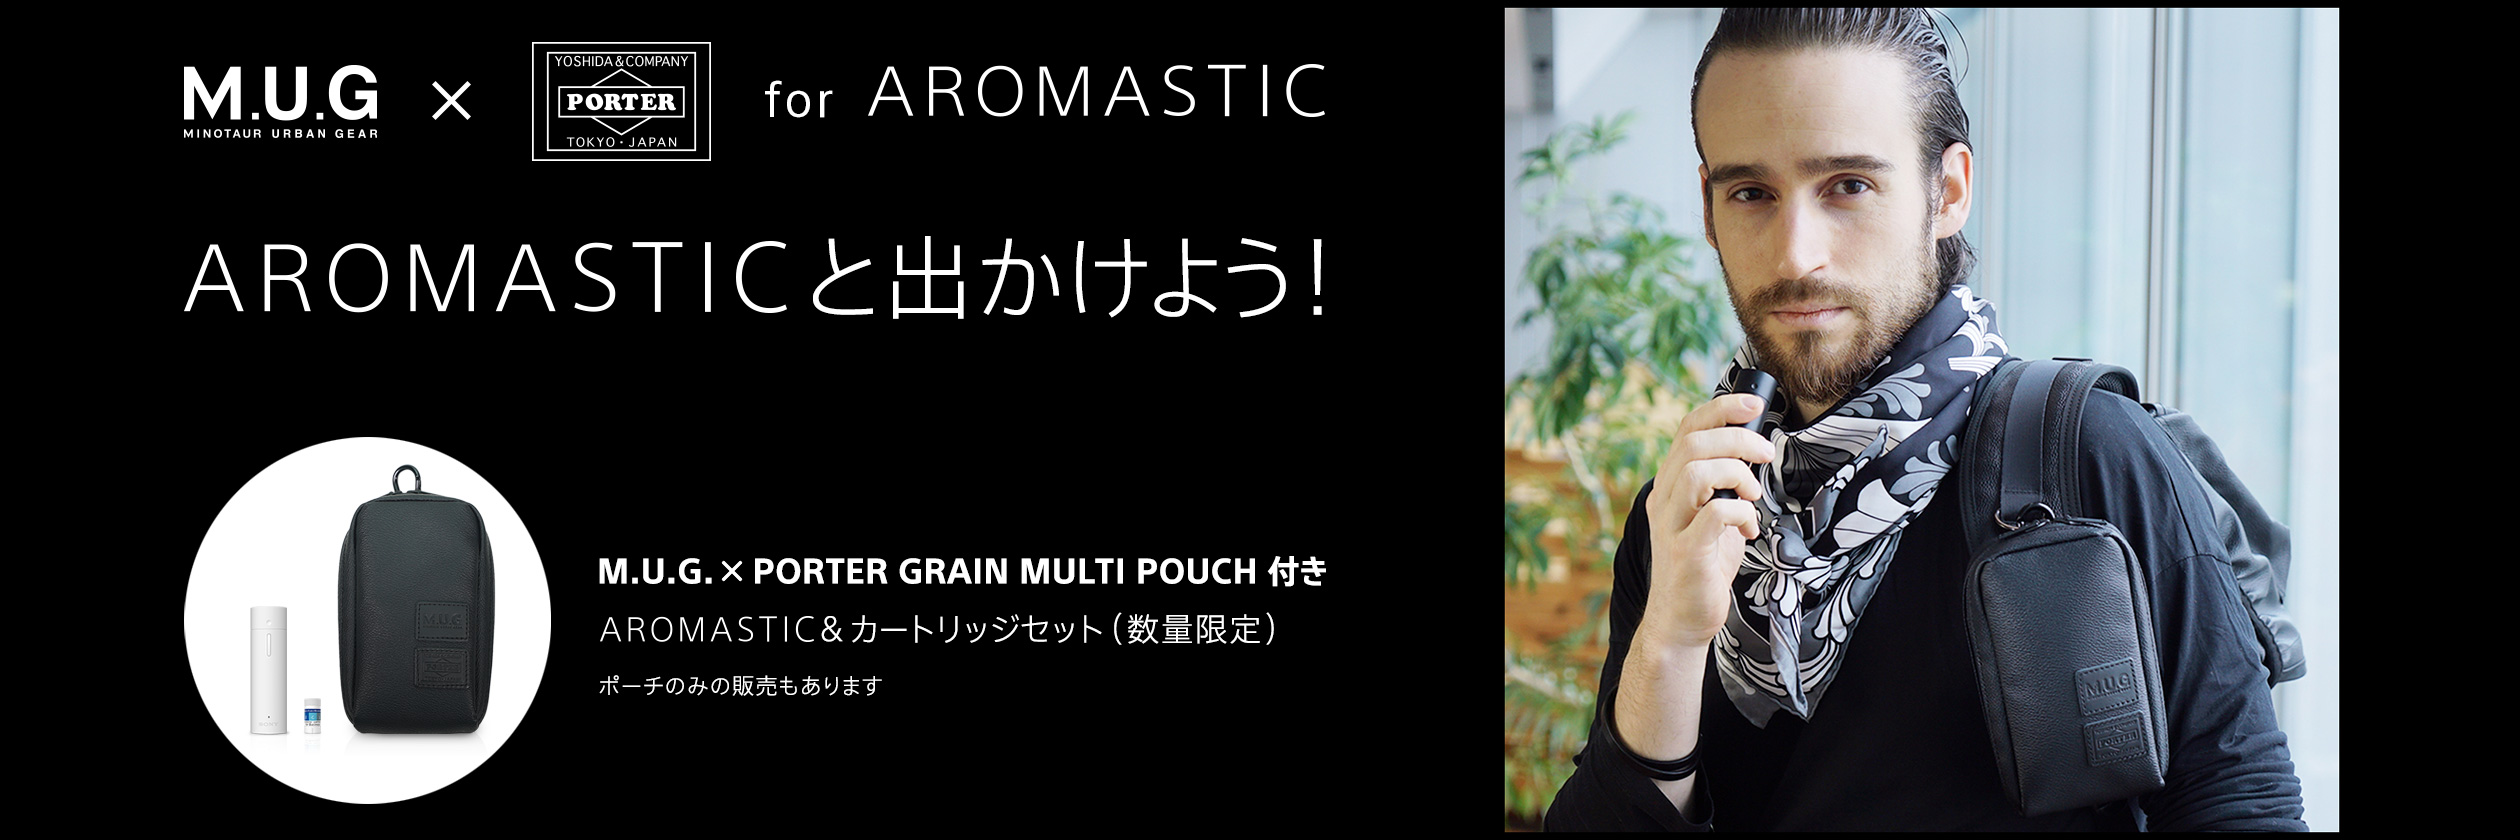 M.U.G x PORTER GRAIN MULTI POUCH for AROMASTIC